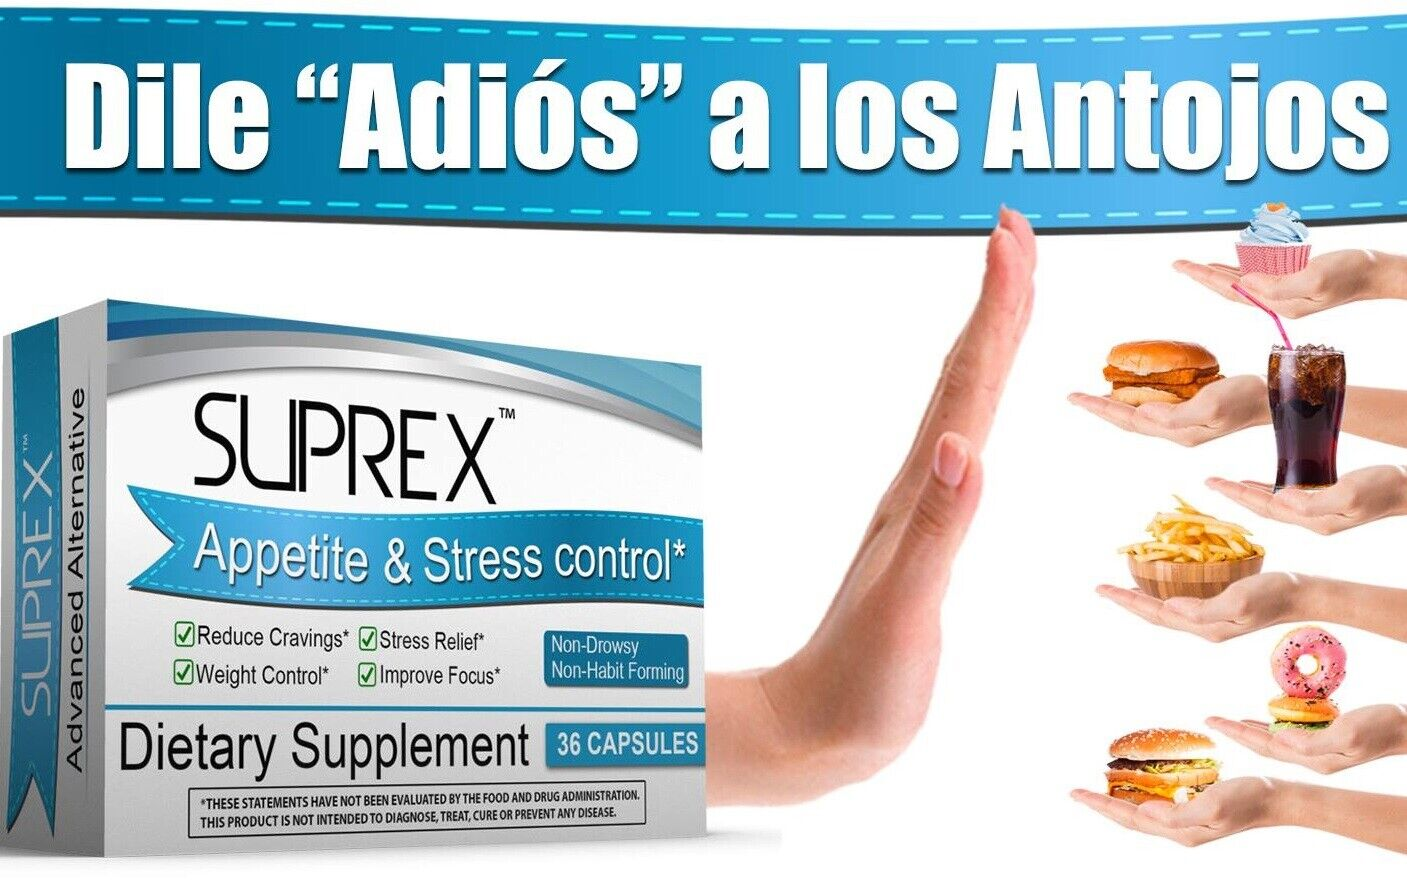 Suprex Appetite & Stress control Stress Relief Mood Appetite Control gluten % of 2